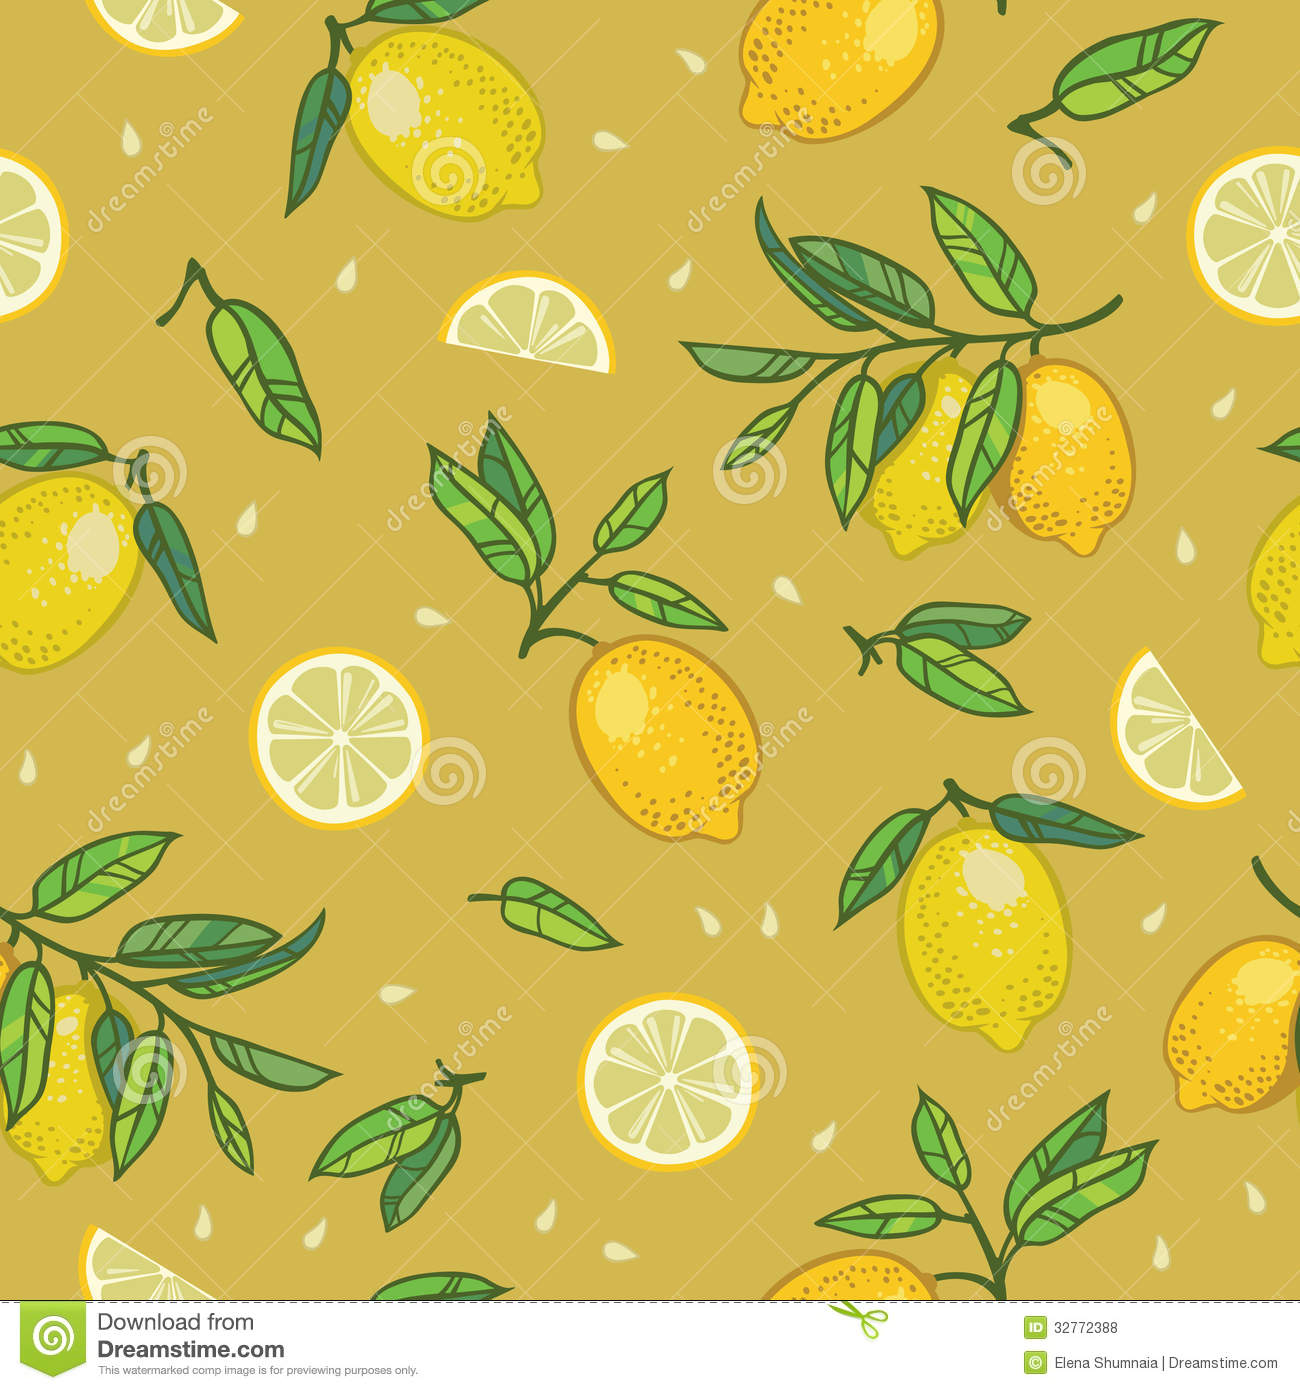 Lemon yellow wallpaper